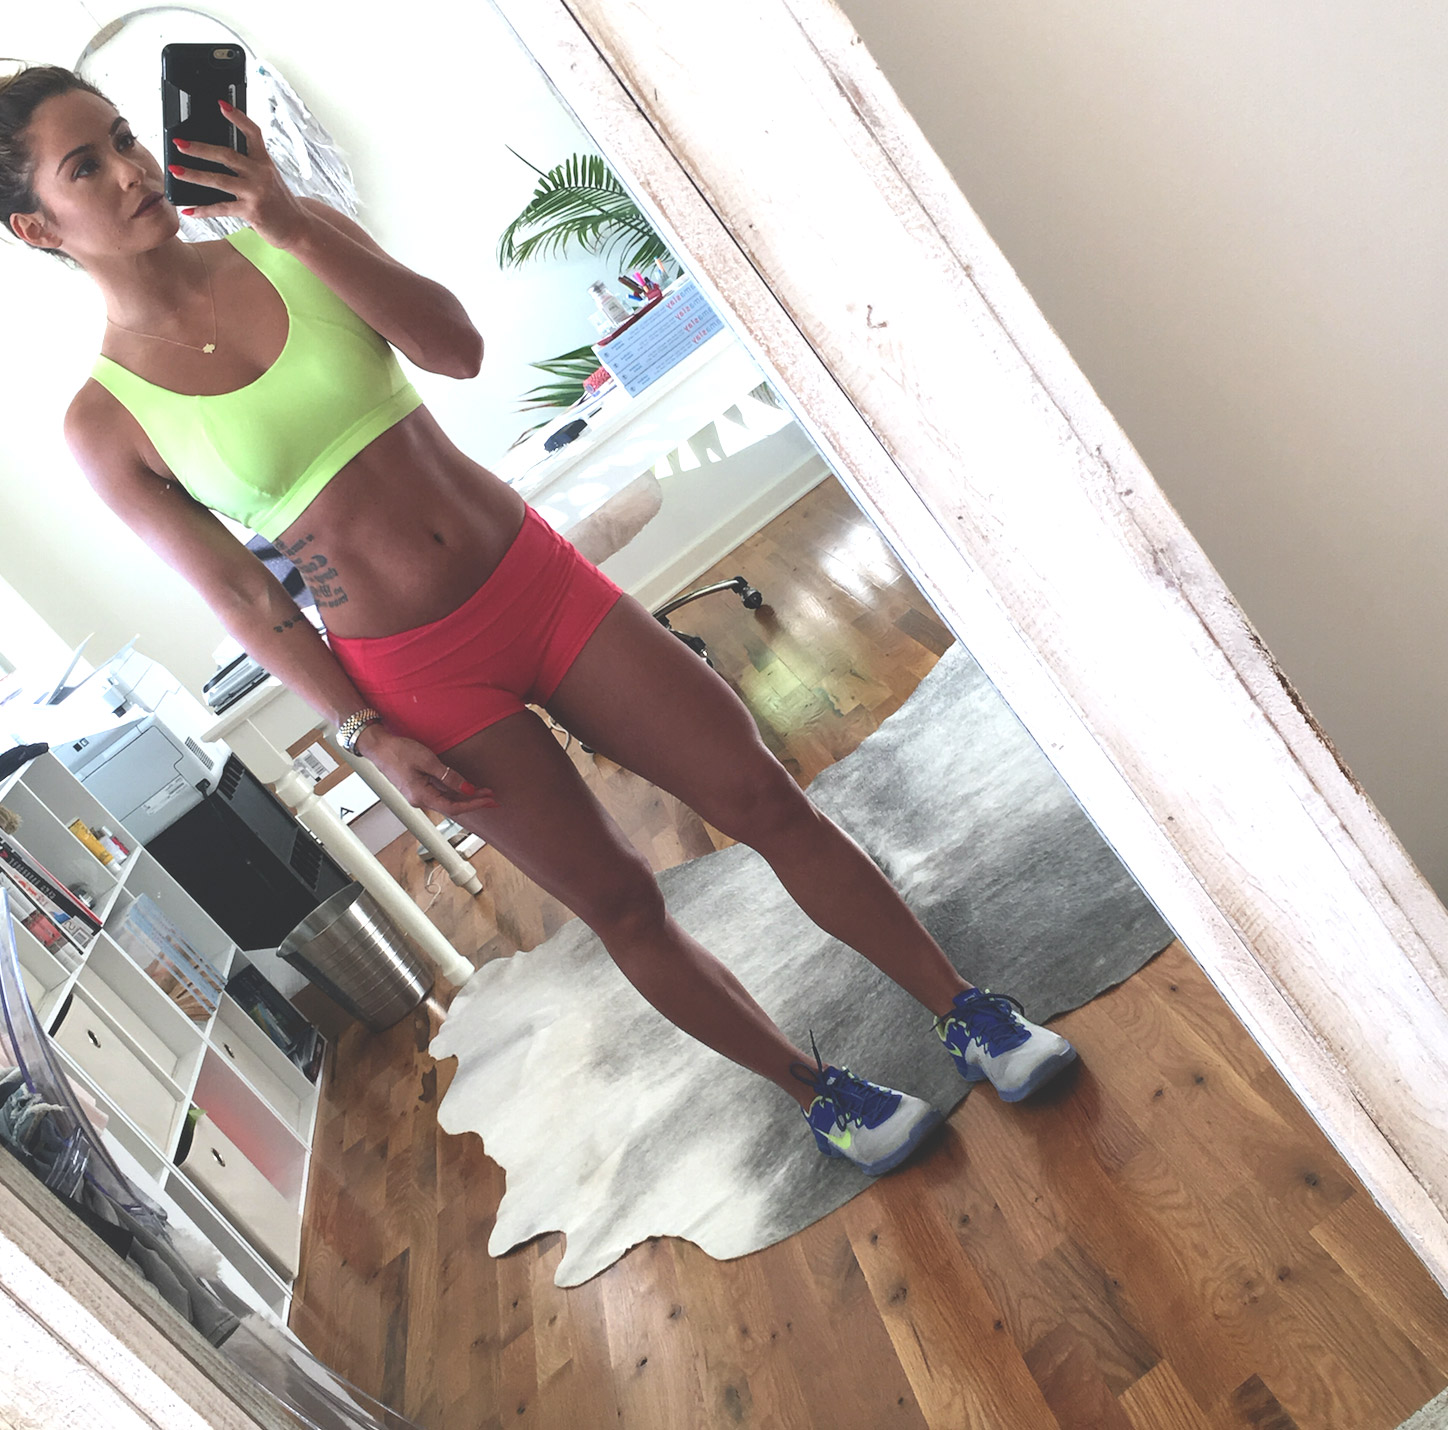 Workout Wednesday - a week of workouts in case you're in a workout rut  Wearing:  Sweaty Betty bra ,  Lululemon shorts  and  Nike Metcons